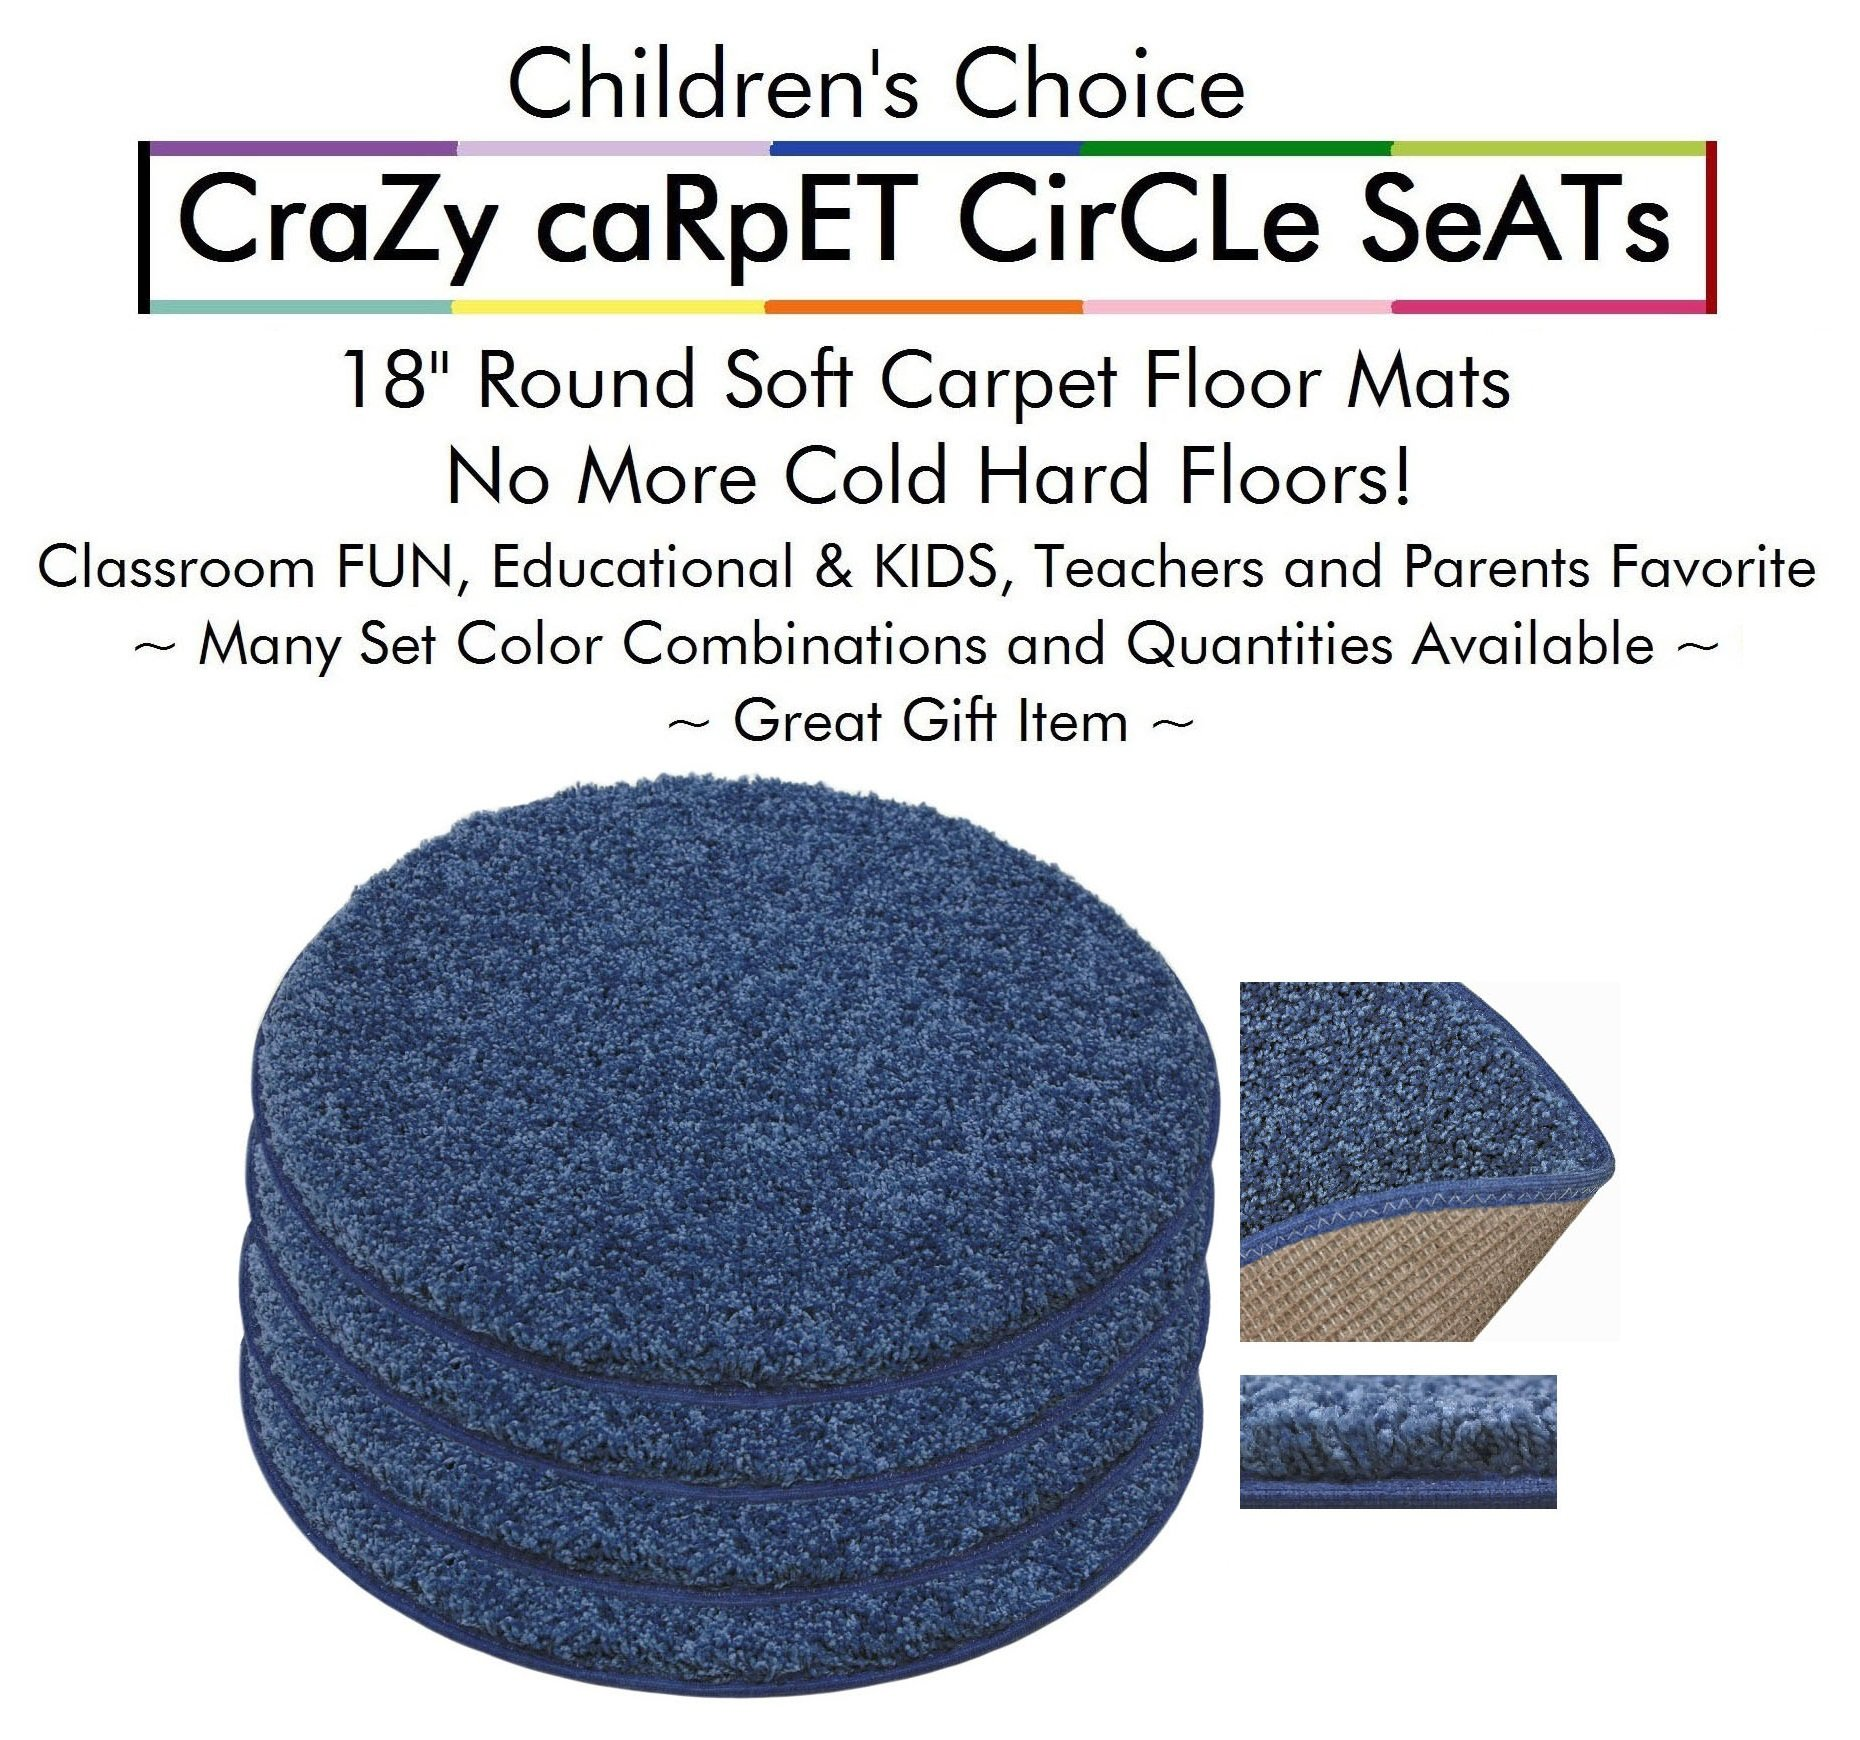 "Set 4 - Super Hero Kids CraZy CarPet CirCle SeaTs 18"" Round Soft Warm Floor Mat - Cushions 